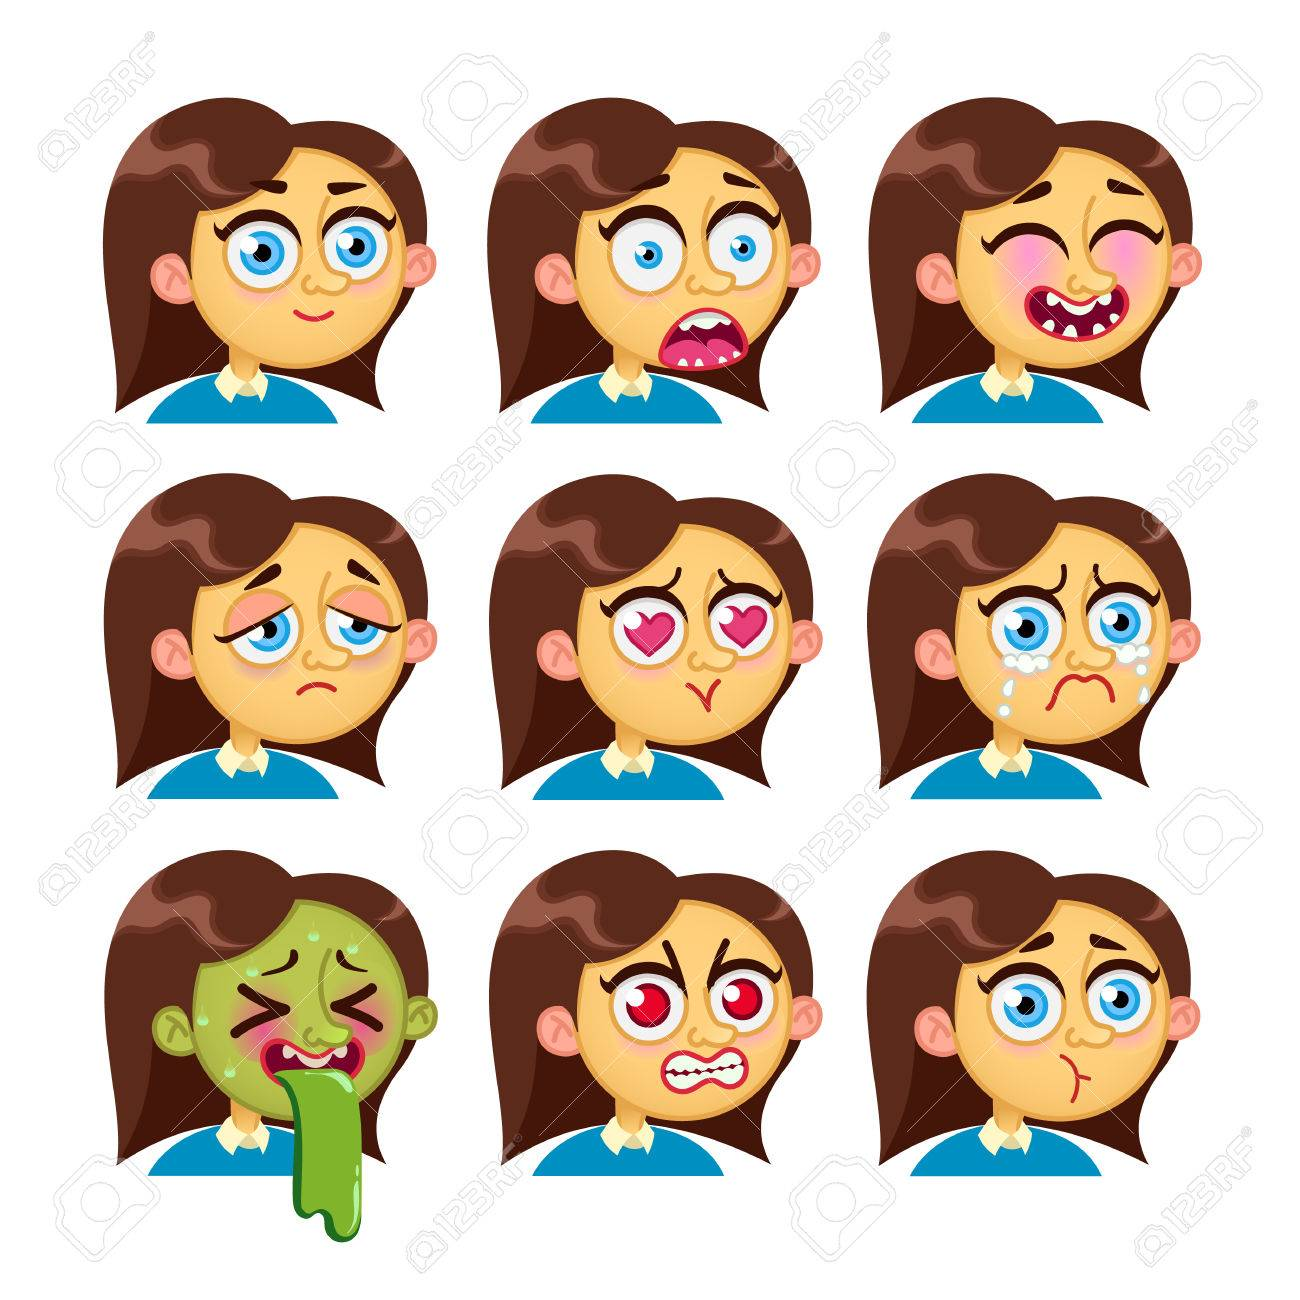 Cartoon characters girl emotion faces woman emoji face icons girl emotion faces woman emoji face icons and symbols human expression biocorpaavc